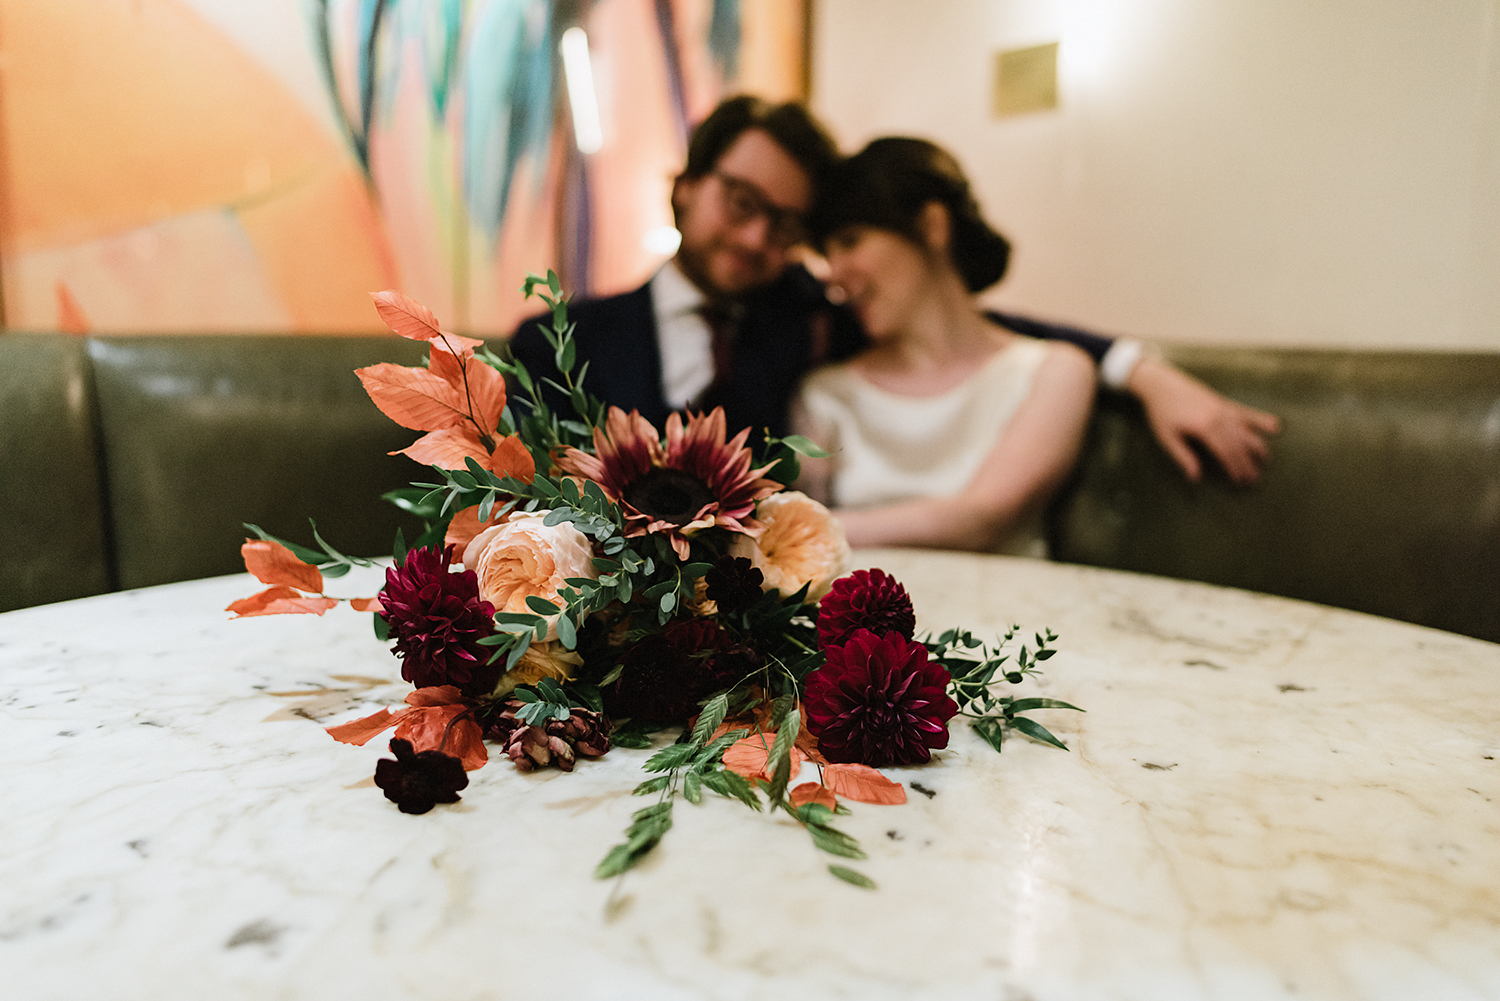 film-couples-portraits-at-the-drake-hotel-bar-bouquet-by-coriander-girl-moody-romantic-intimate-inspiration-Toronto-Elopement-at-the-Drake-Hotel-pop-up-Torontos-Best-wedding-photographers-elopement-inspiration.jpg